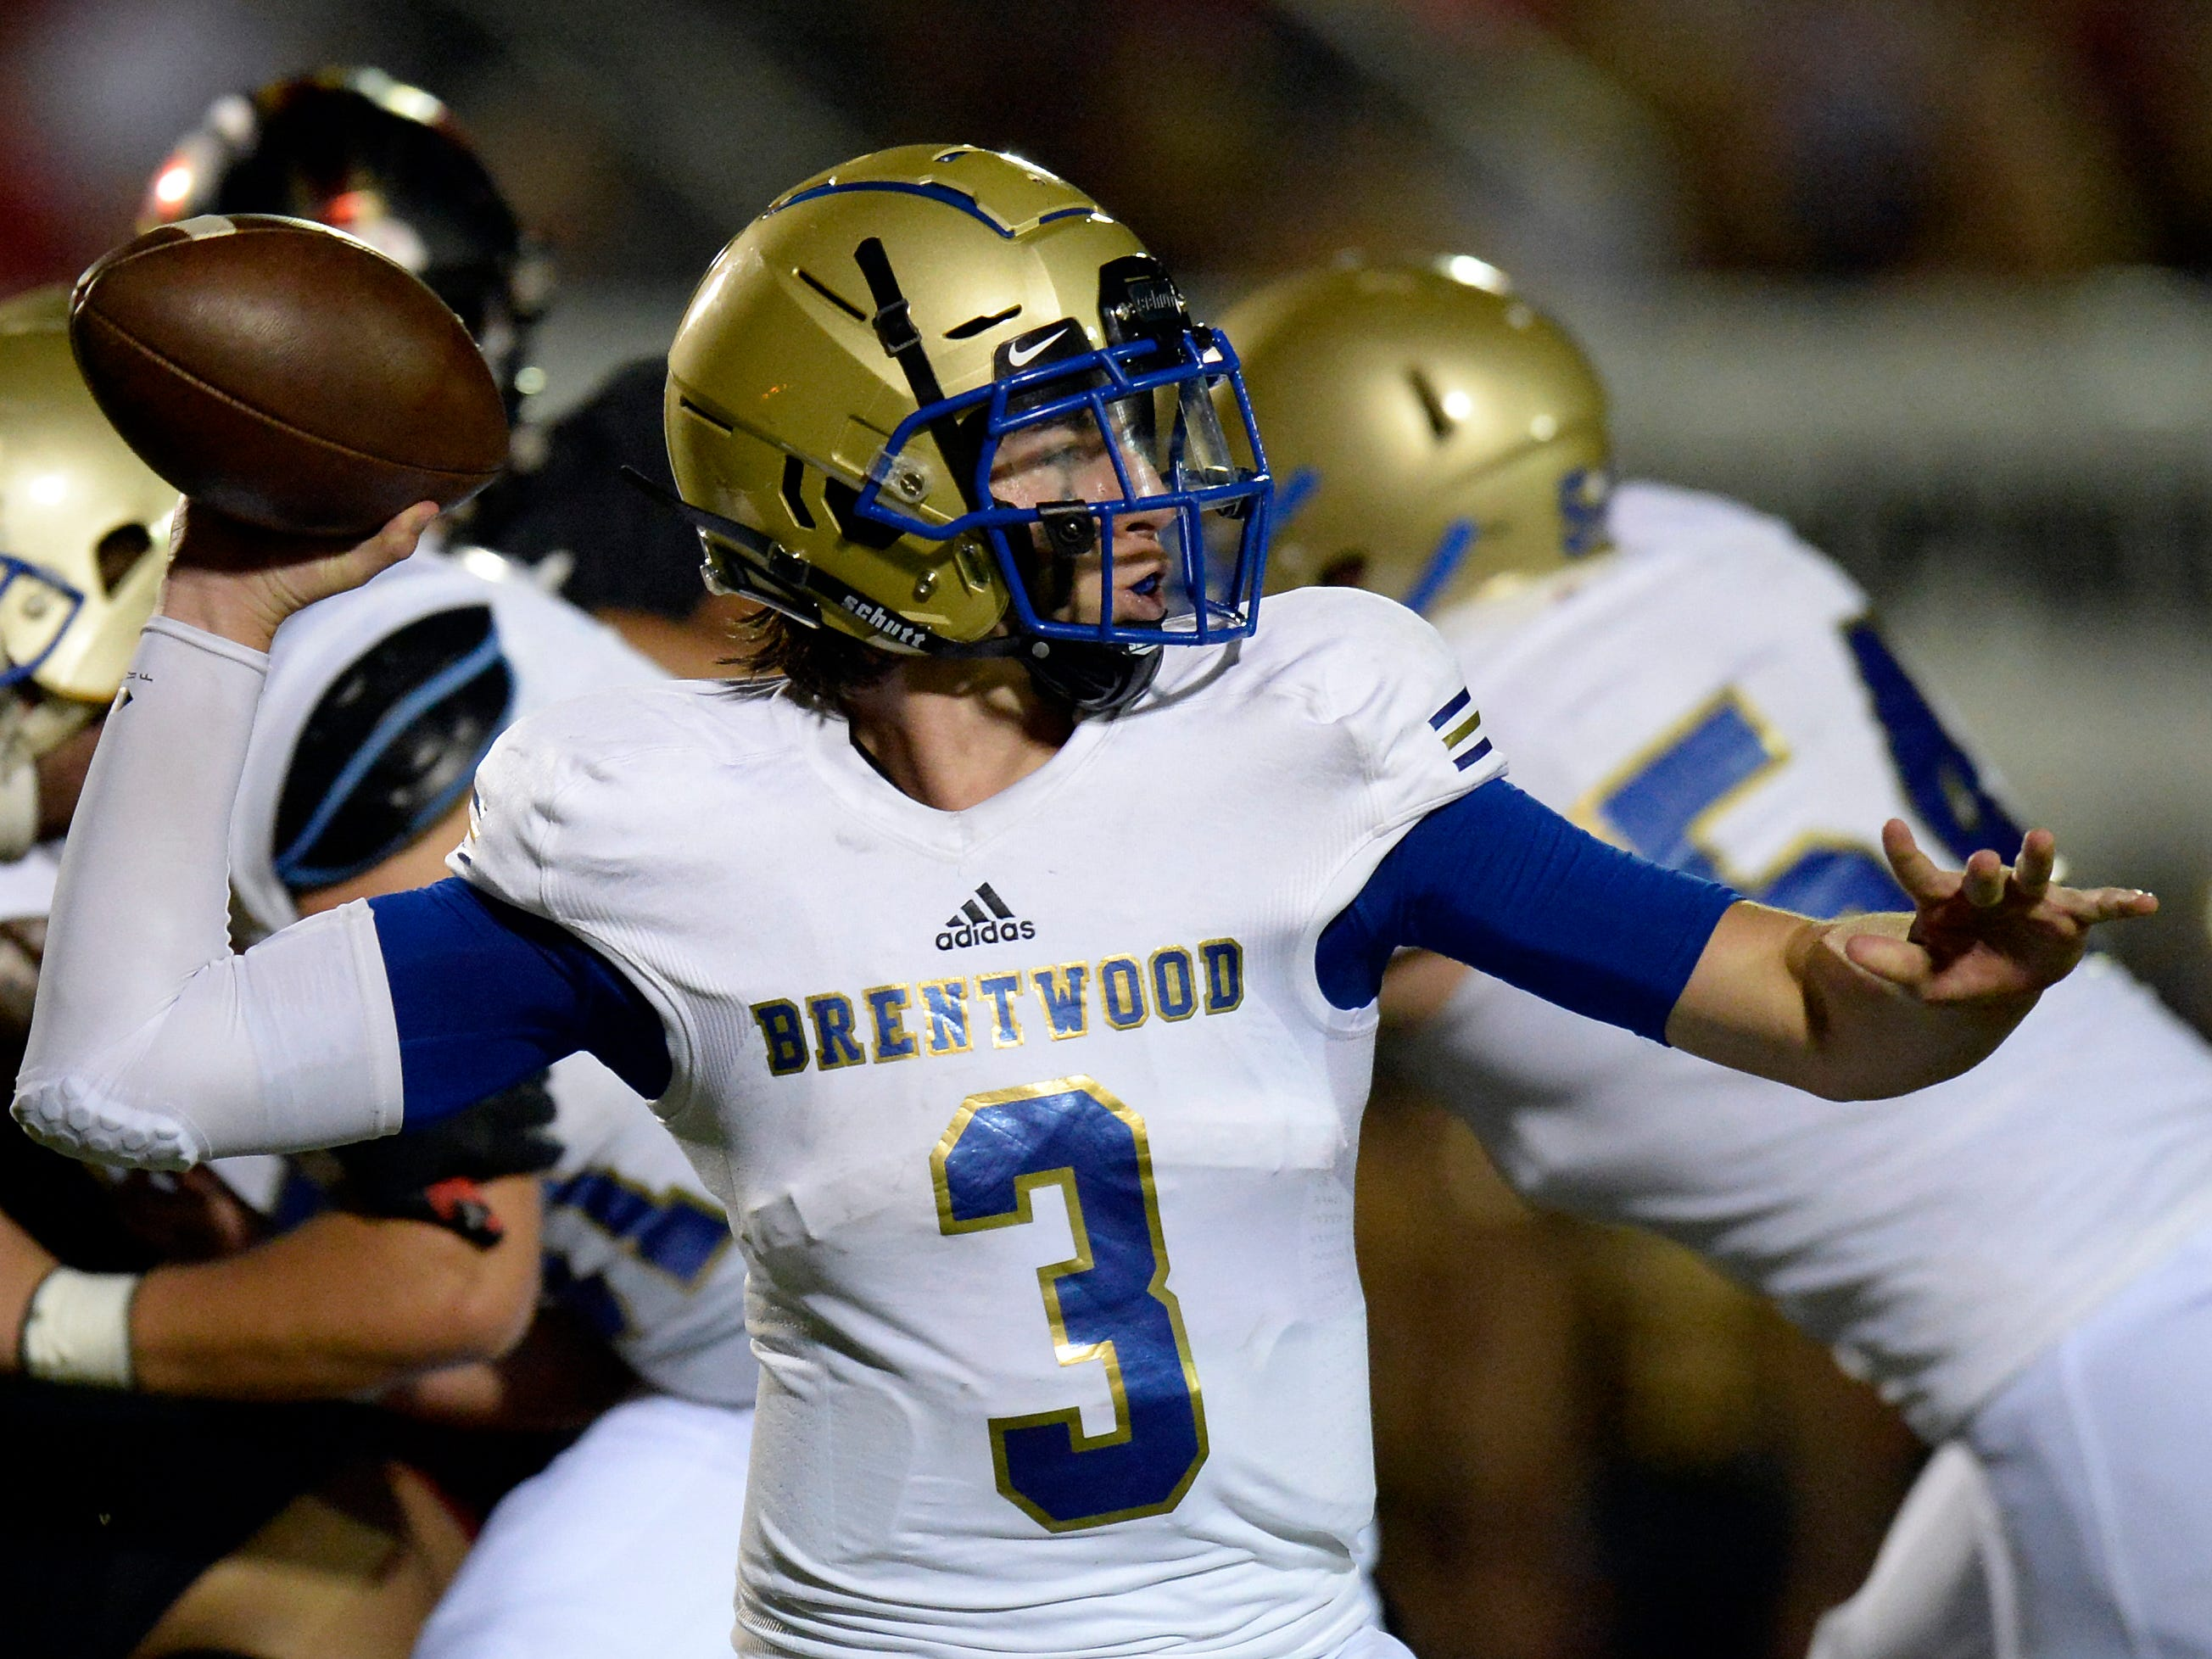 Brentwood quarterback Cade Granzow (3) passes against Ravenwood during the first half of an high school football game Friday, September 14, 2018, in Brentwood, Tenn.